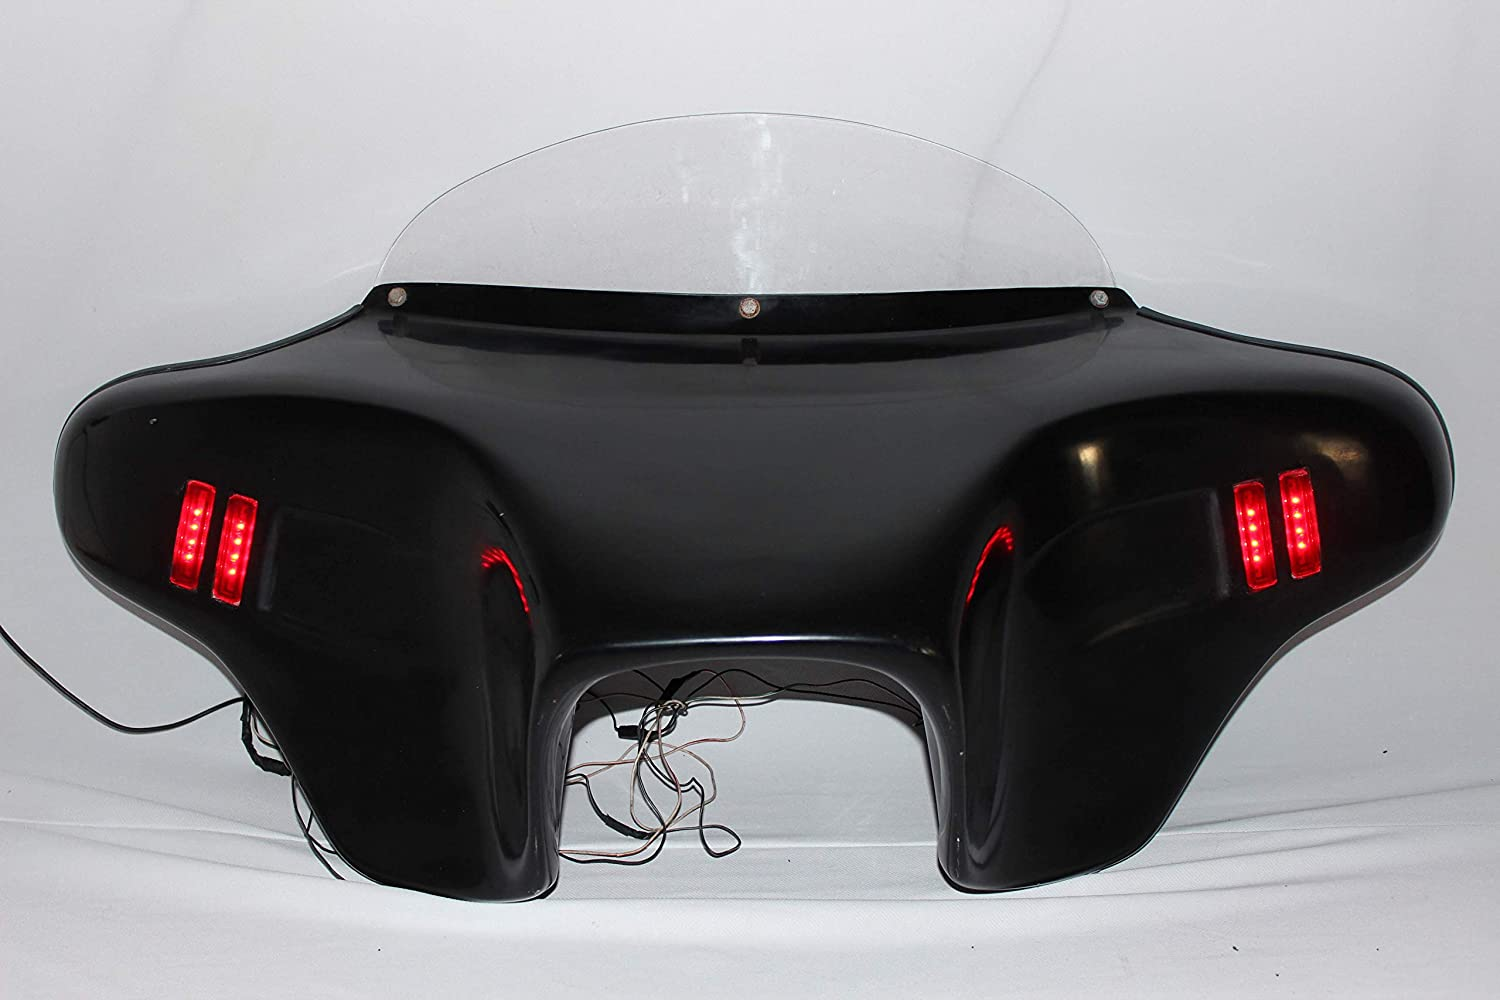 BAT F18 F12-2 GC Cover+MECA Trong Harley Batwing Fairing Windshield 4 SOFTAIL Fat BOY Heritage Deluxe Custom Slim